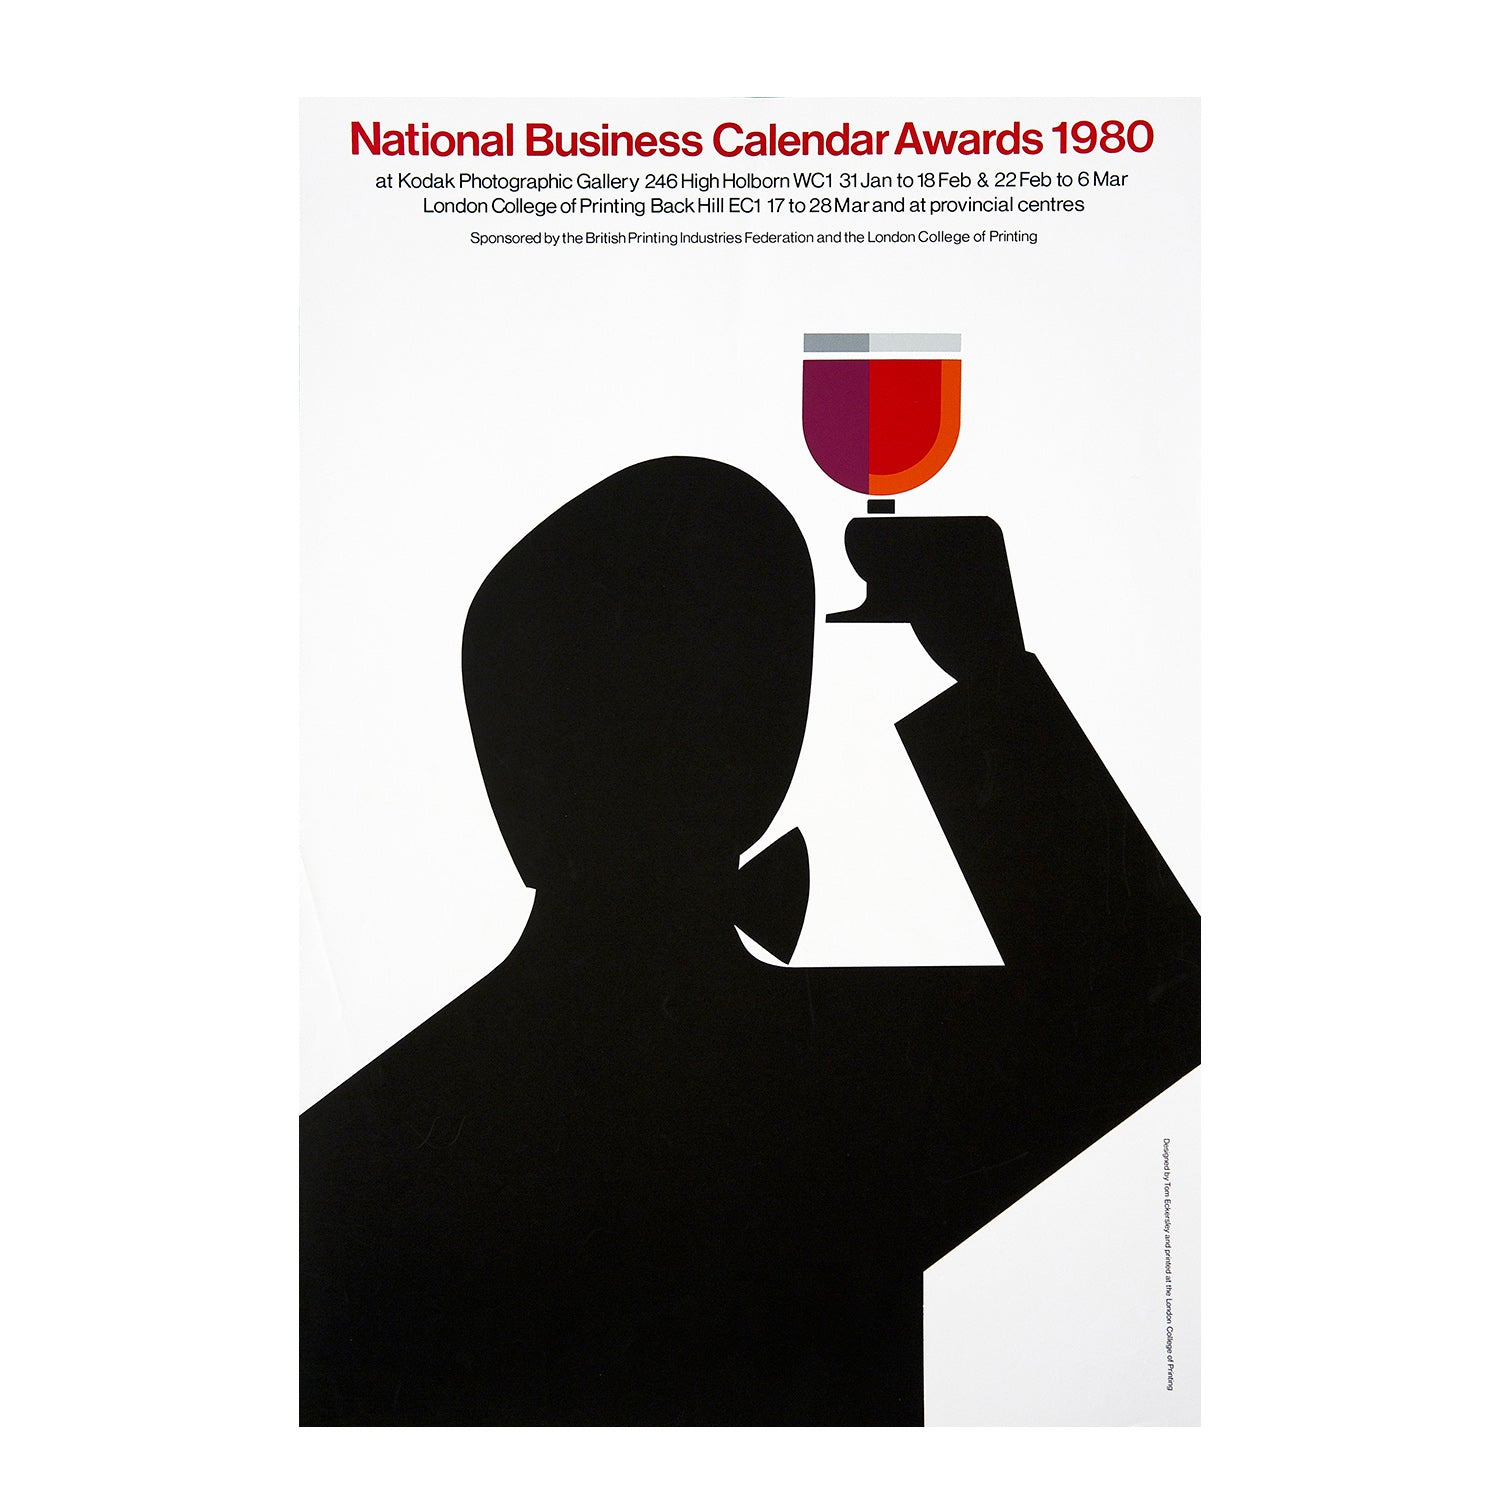 National Business Calendar Awards 1980